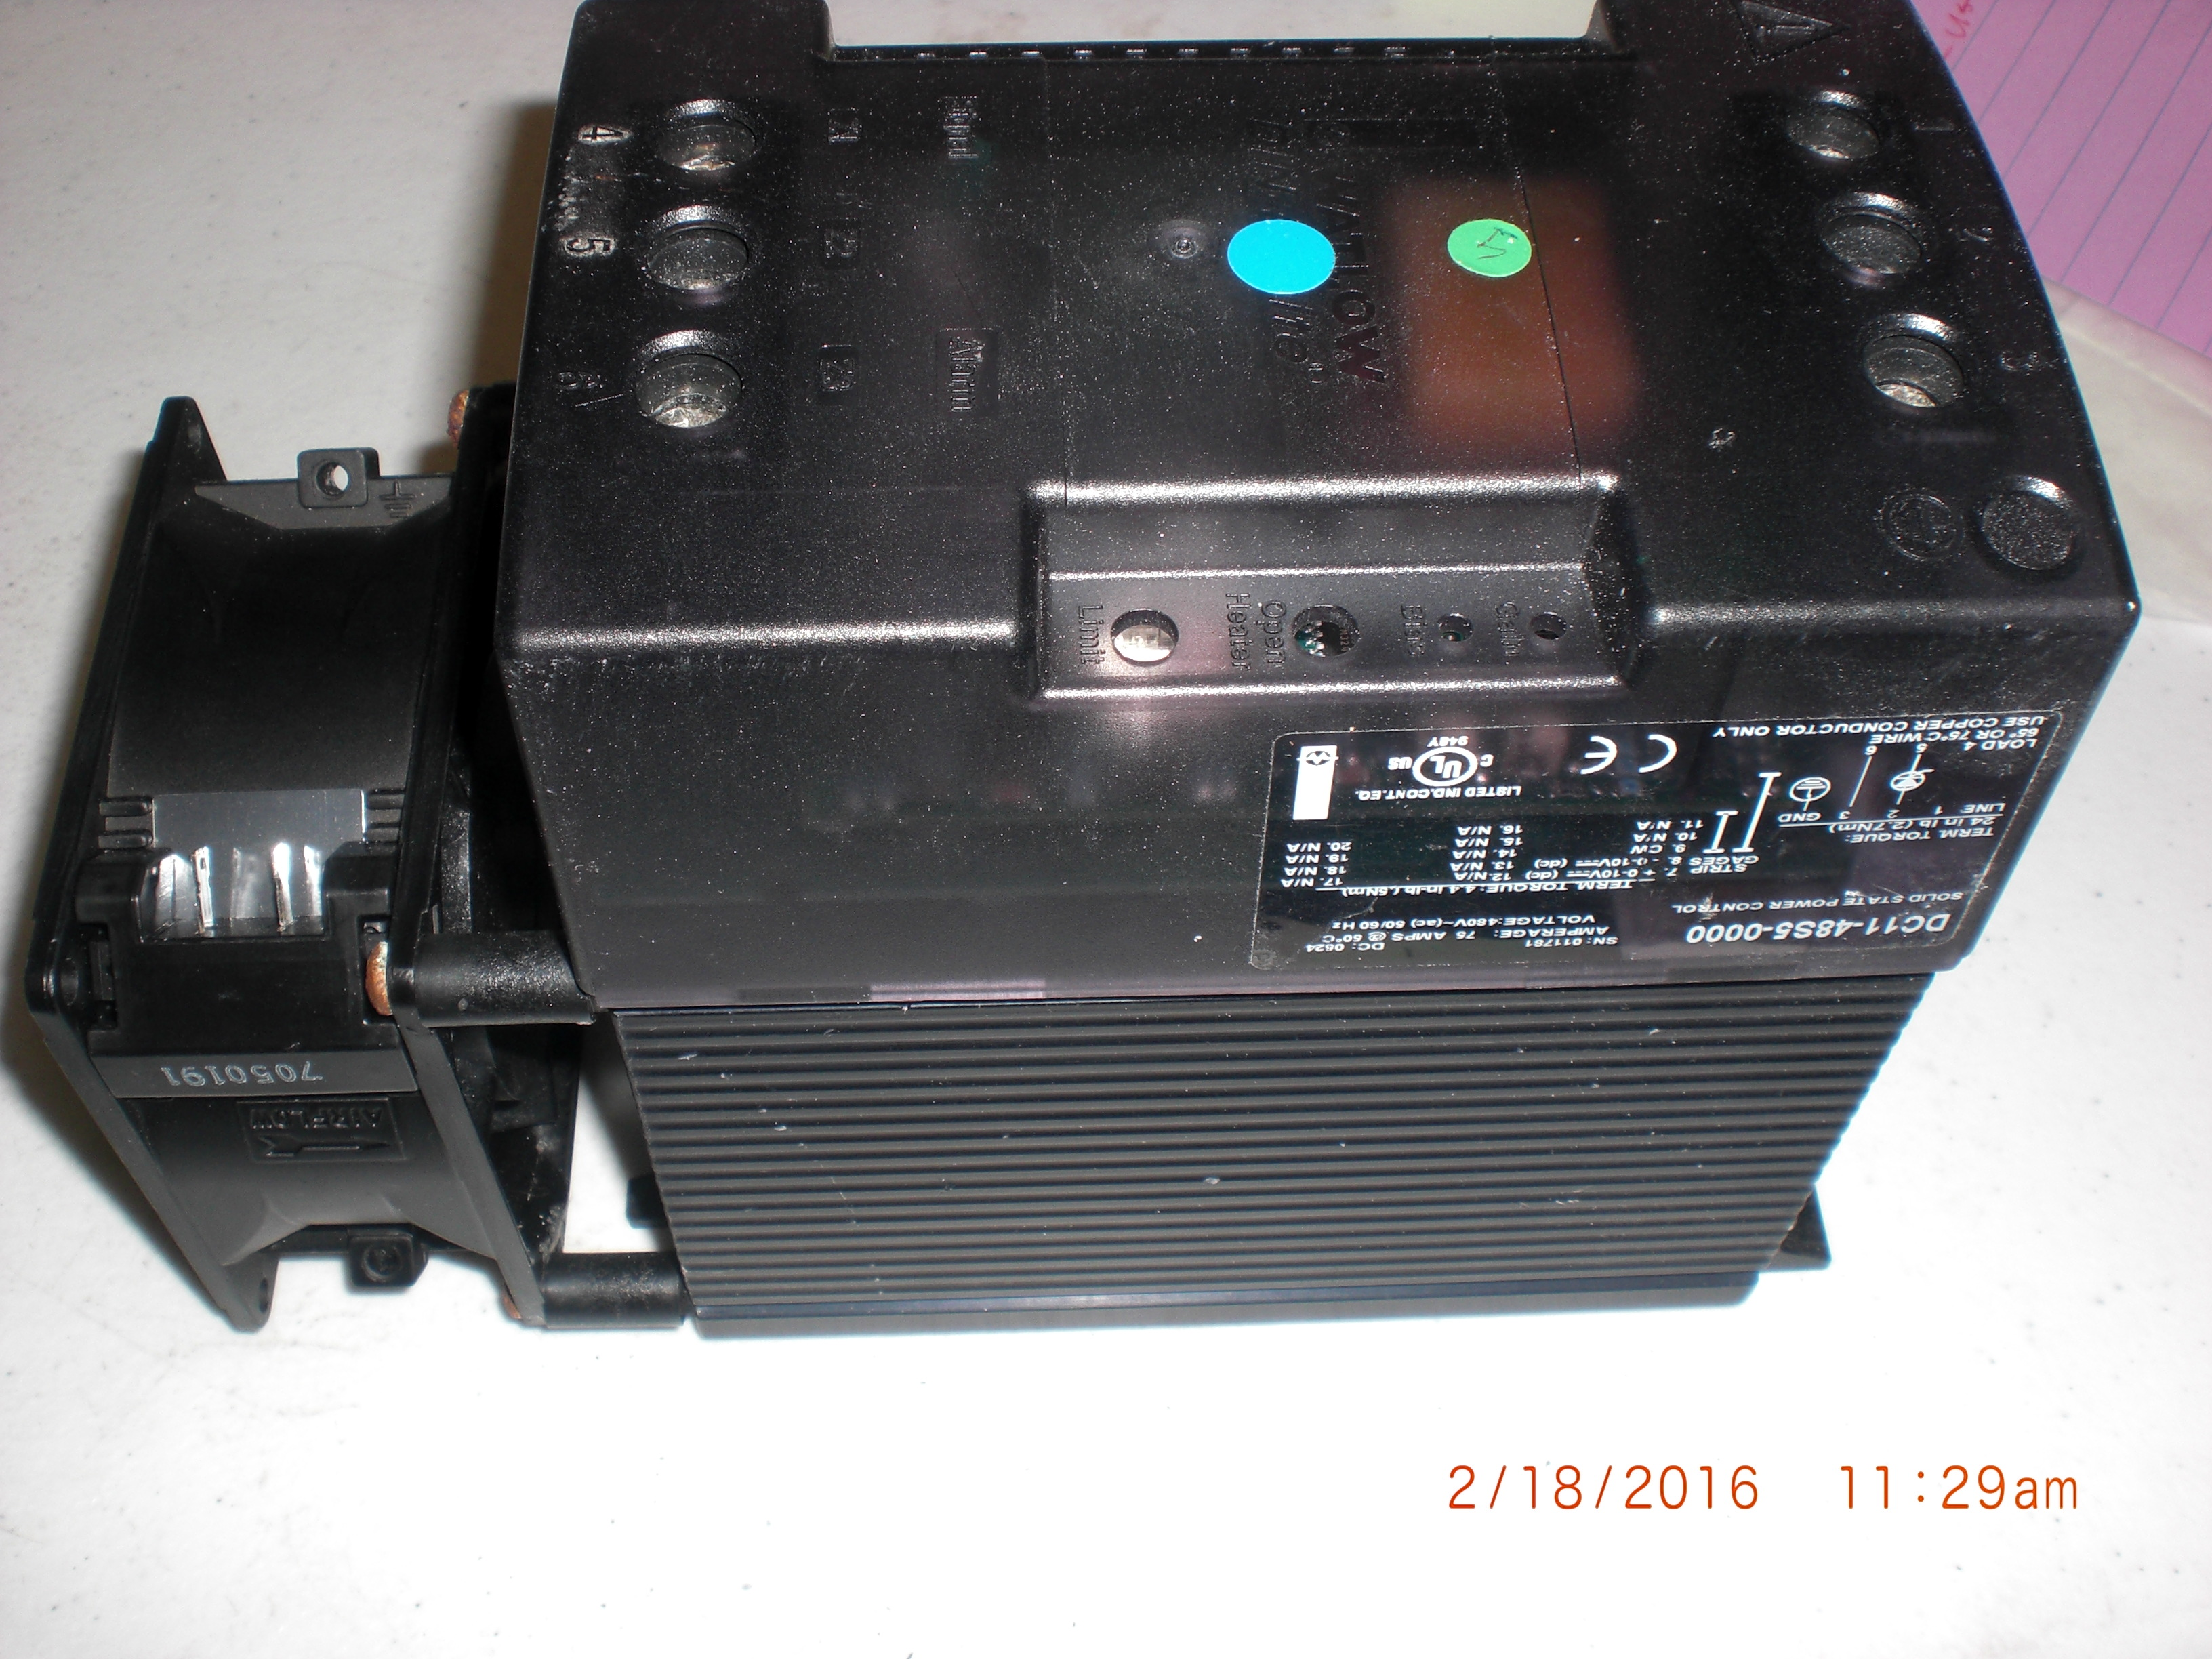 Controller Watlow Anafaze DC1148S5-0000 Solid State Power Control, DIN-A-MITE, 75A, 480V, 50/60Hz